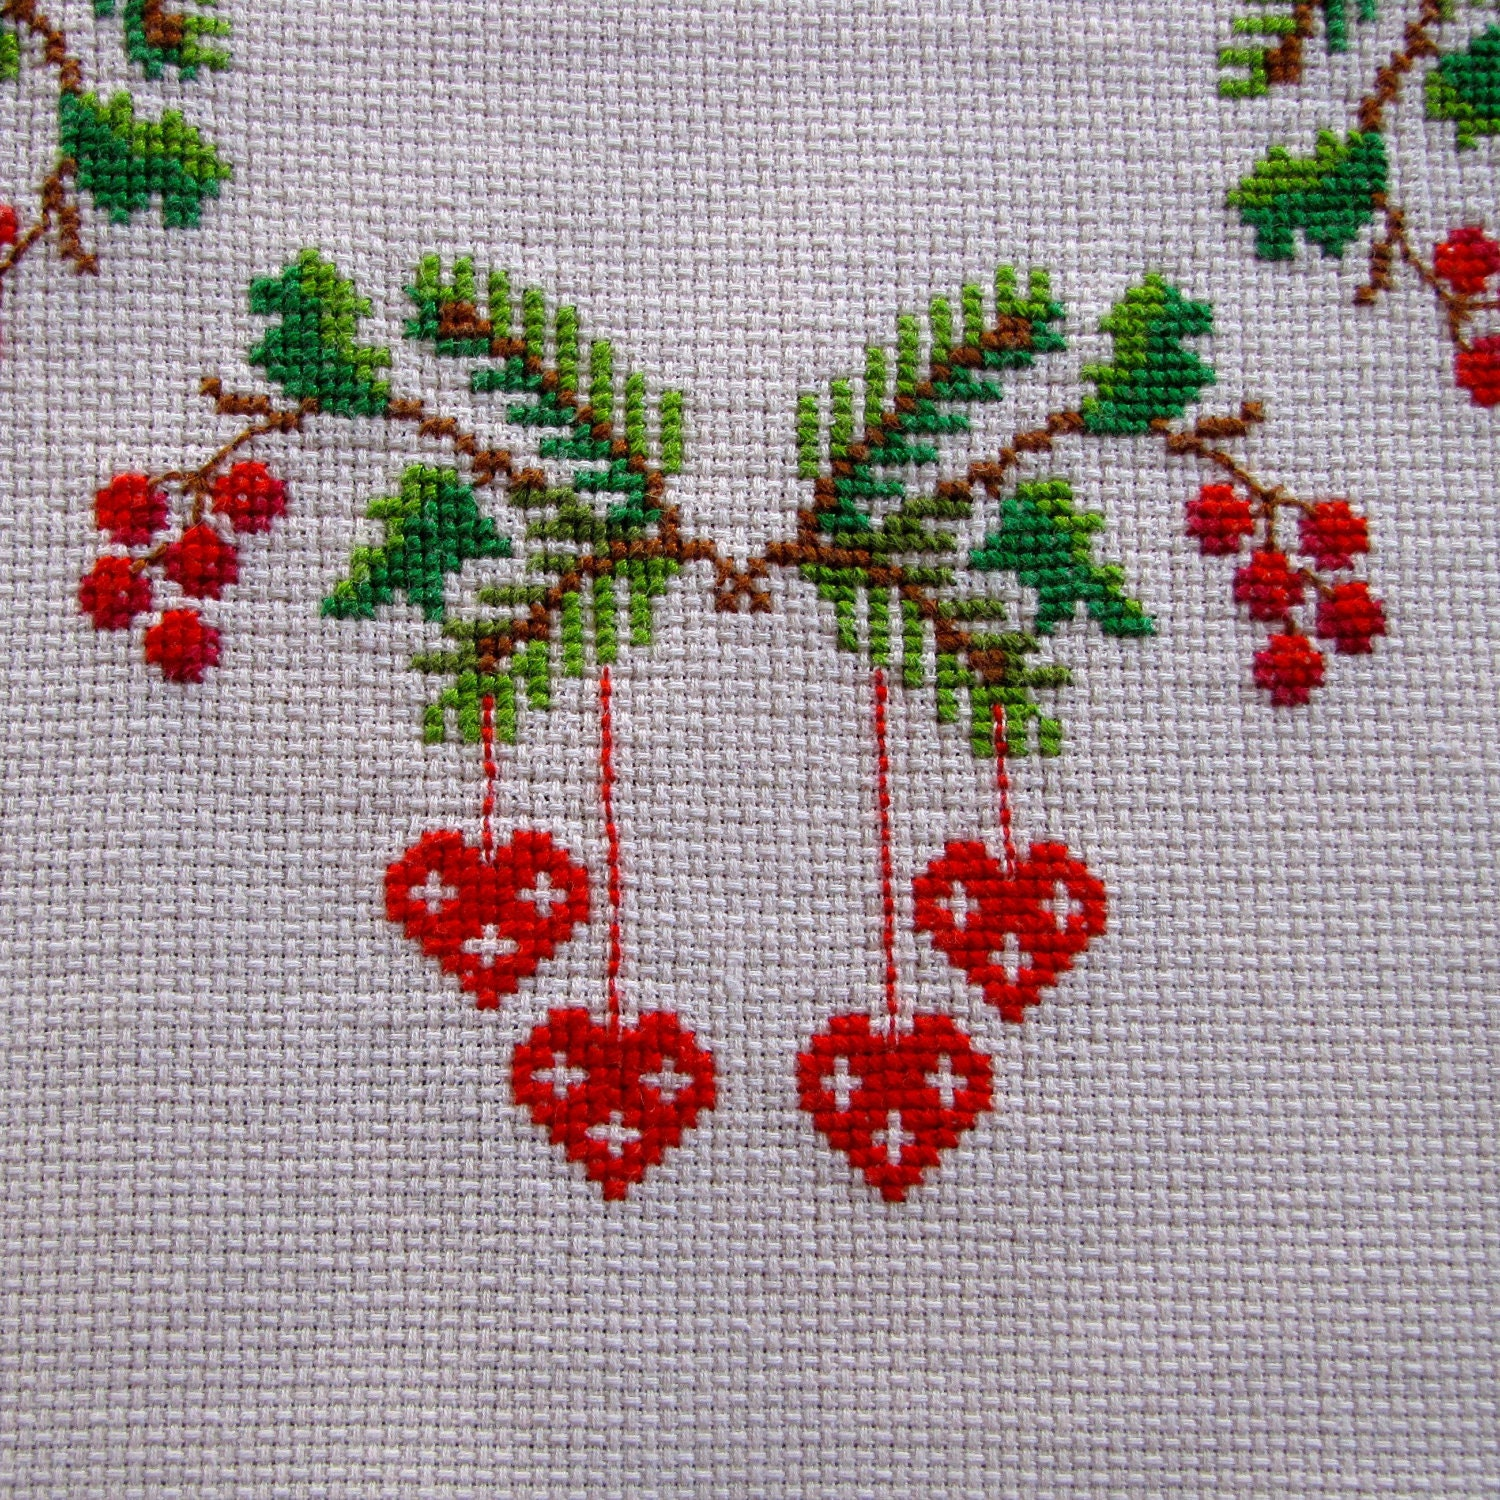 Vintage Linen Tablecloth Embroidered Cross Stitch By Kerrycan